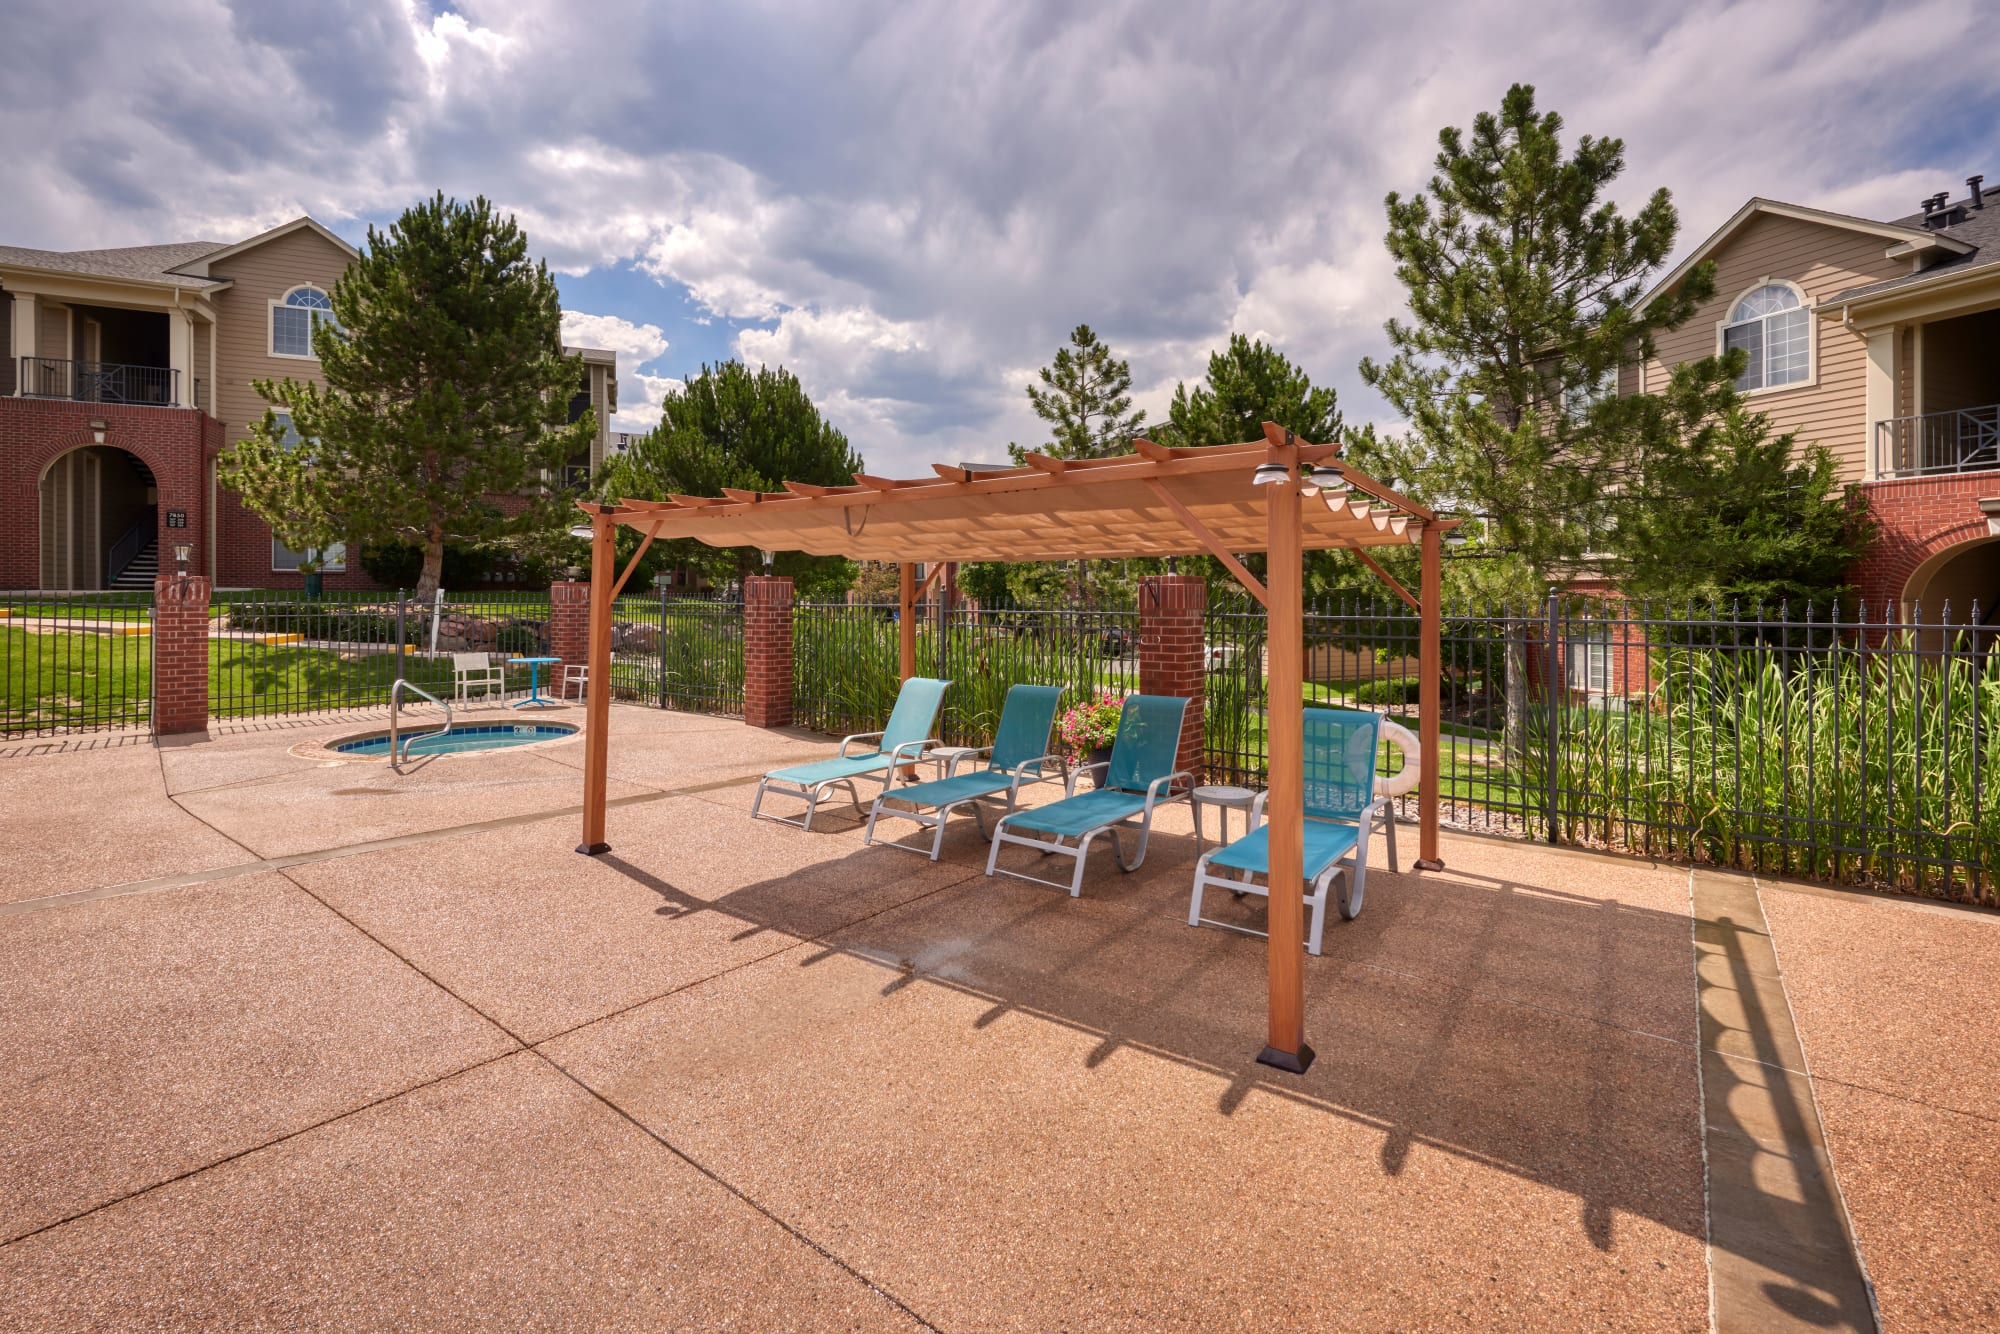 Poolside cabana and hot tub at Skyecrest Apartments in Lakewood, Colorado